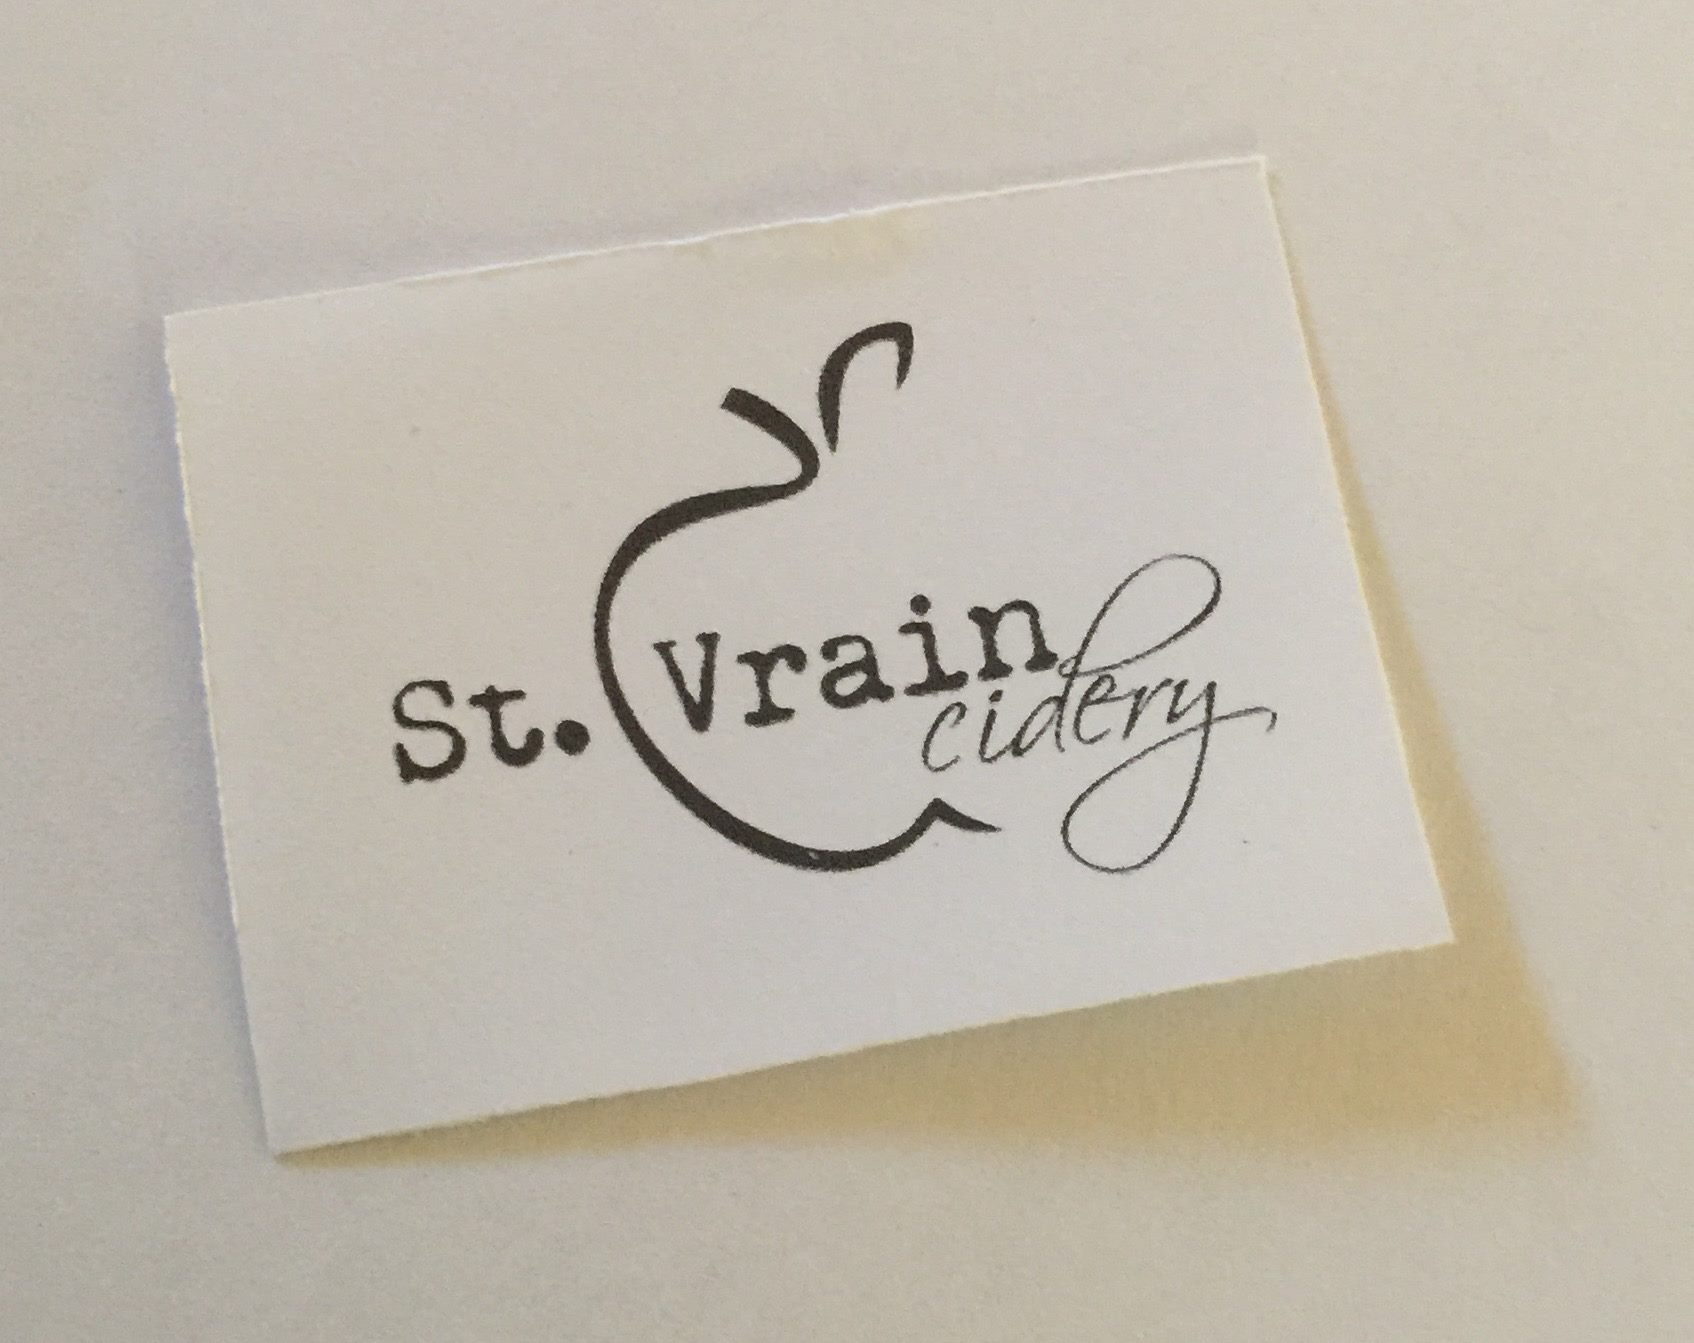 St. Vrain Cidery logo